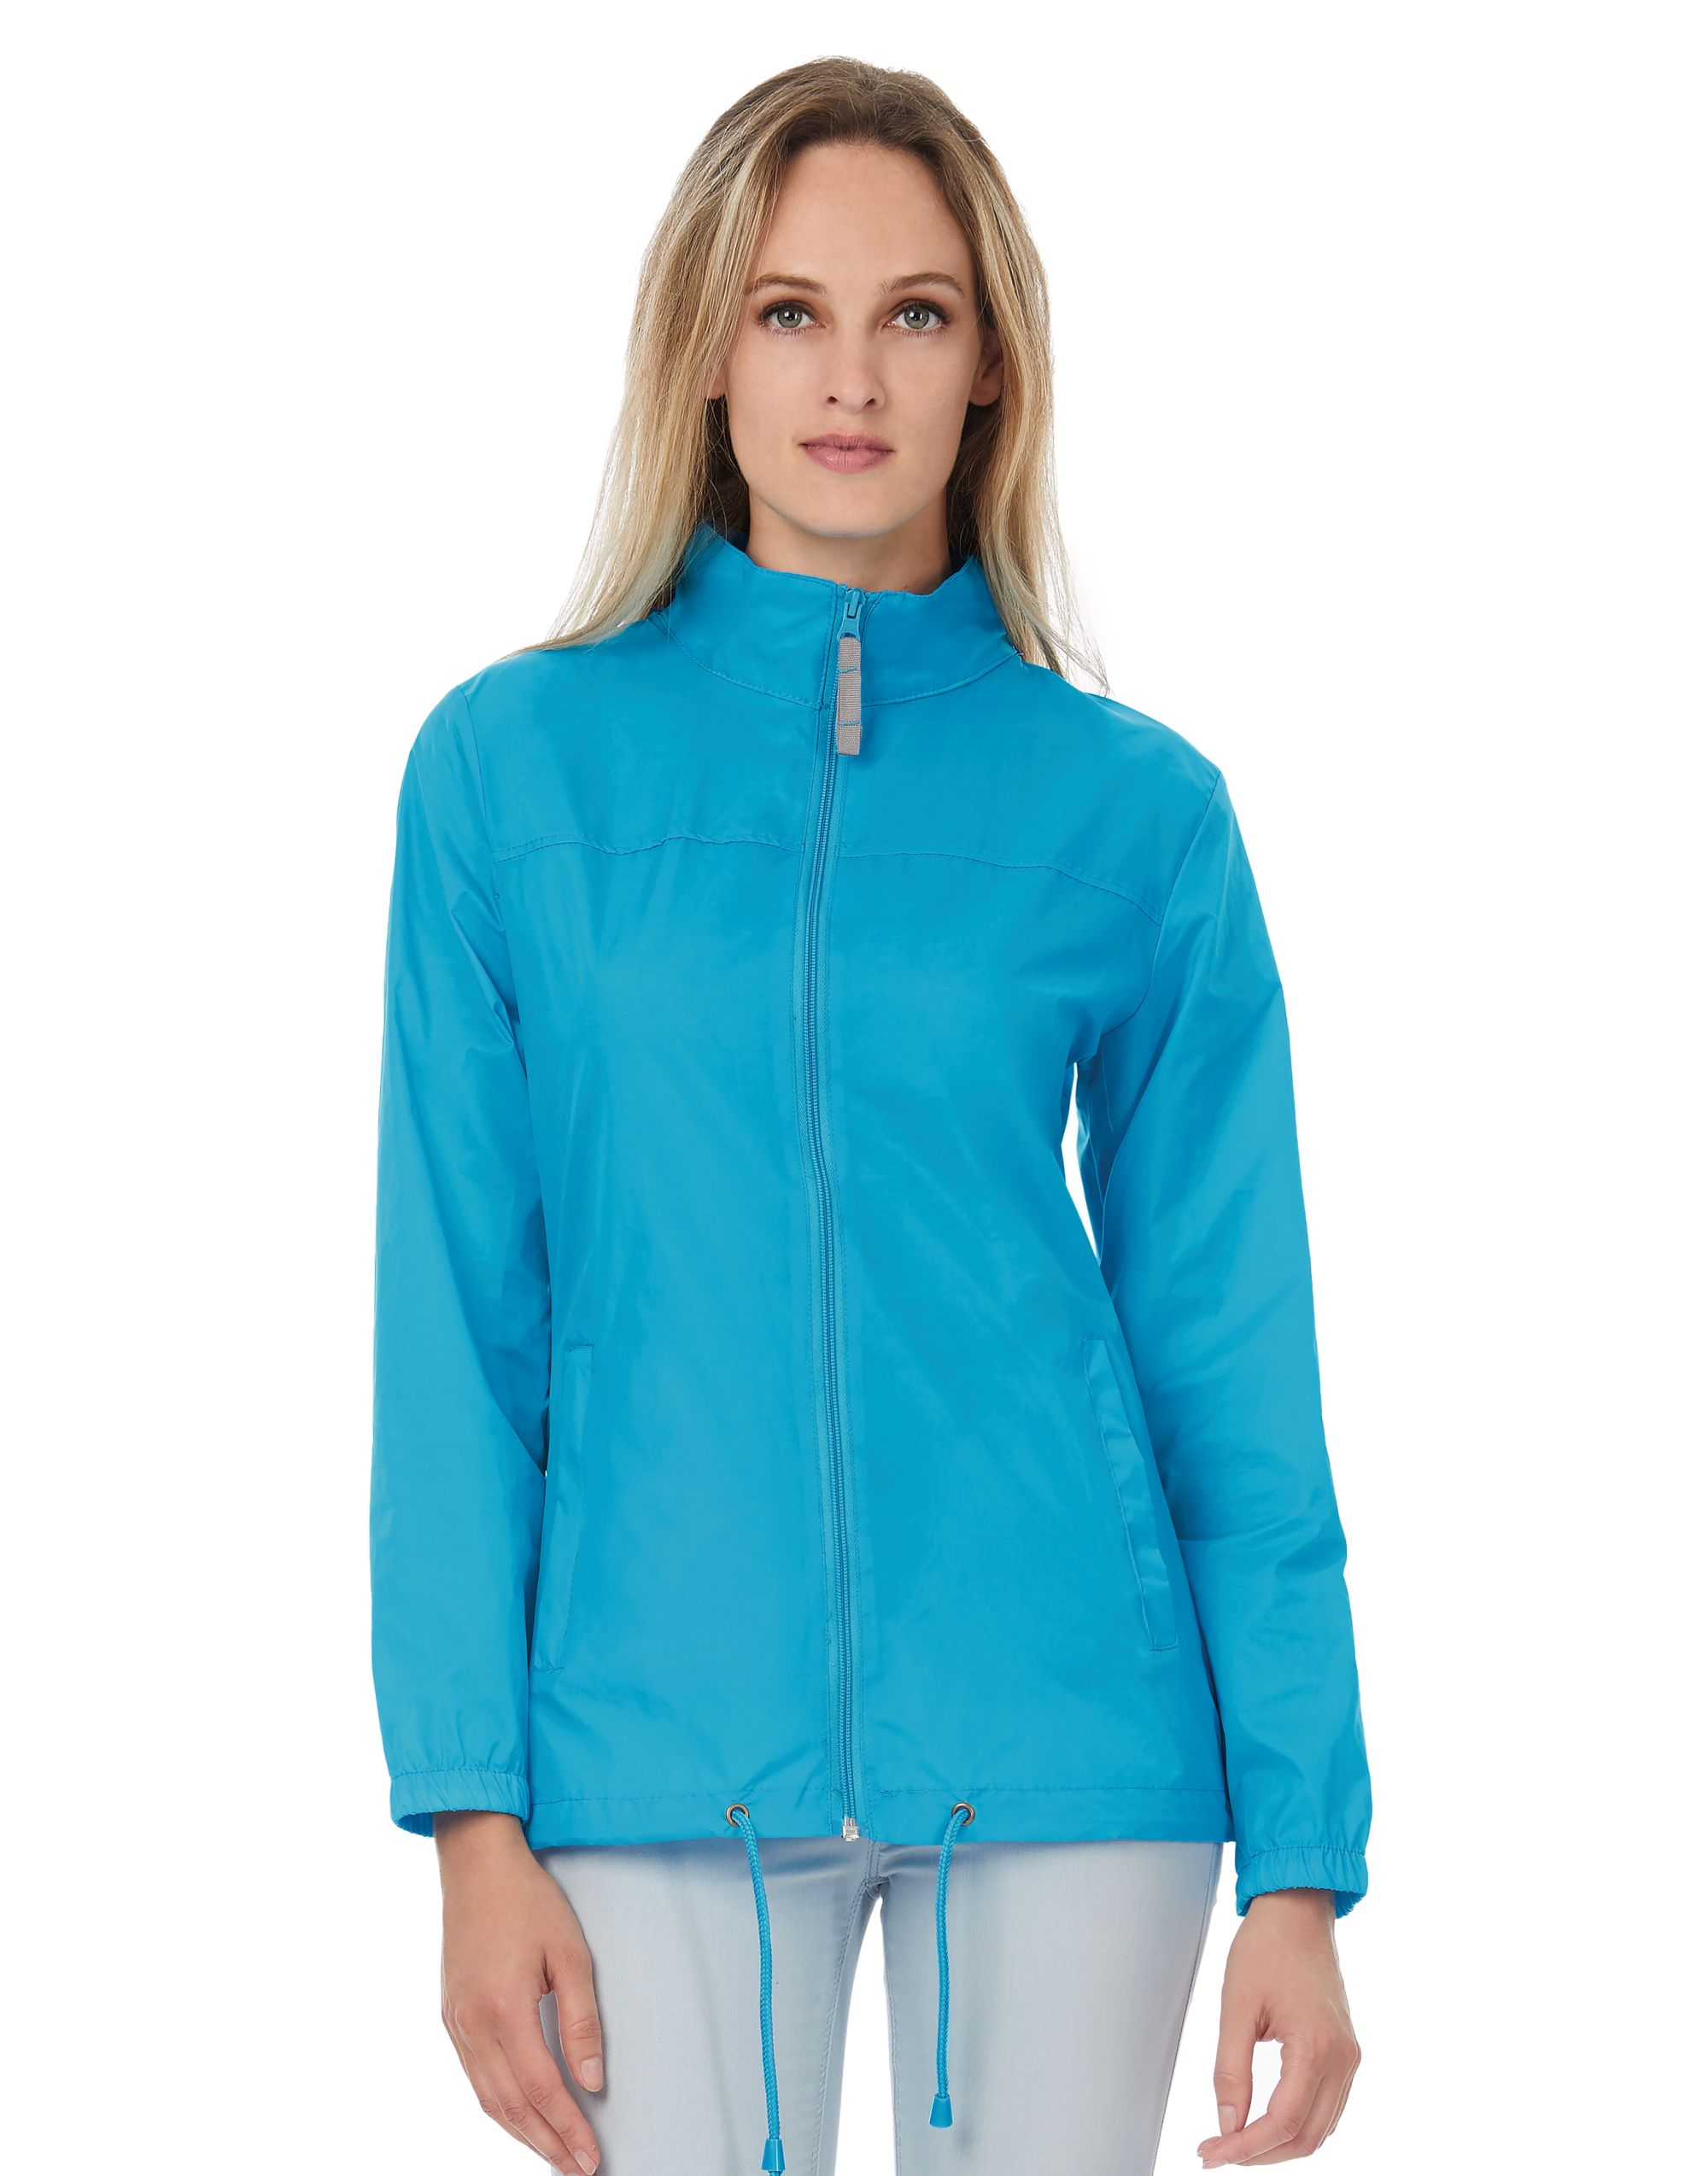 B&C Women's Sirocco Windbreaker Jacket